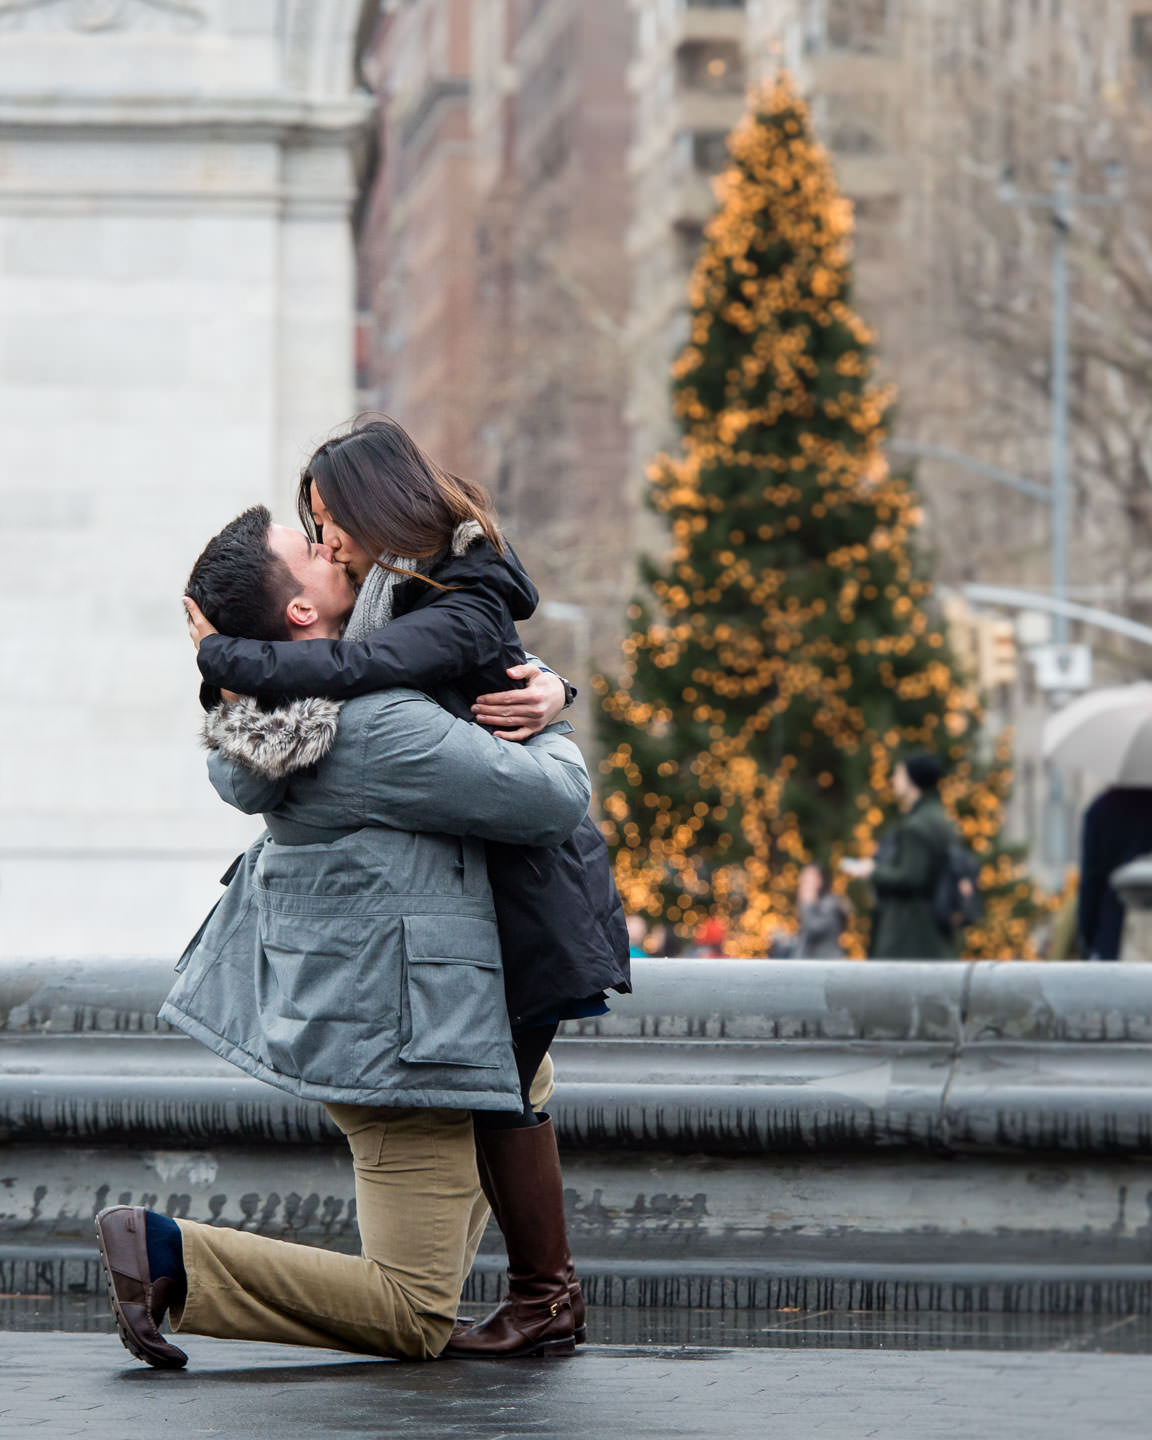 girl very happy as guy is proposing to her in washington square park in winter with christmas tree in background in new york city